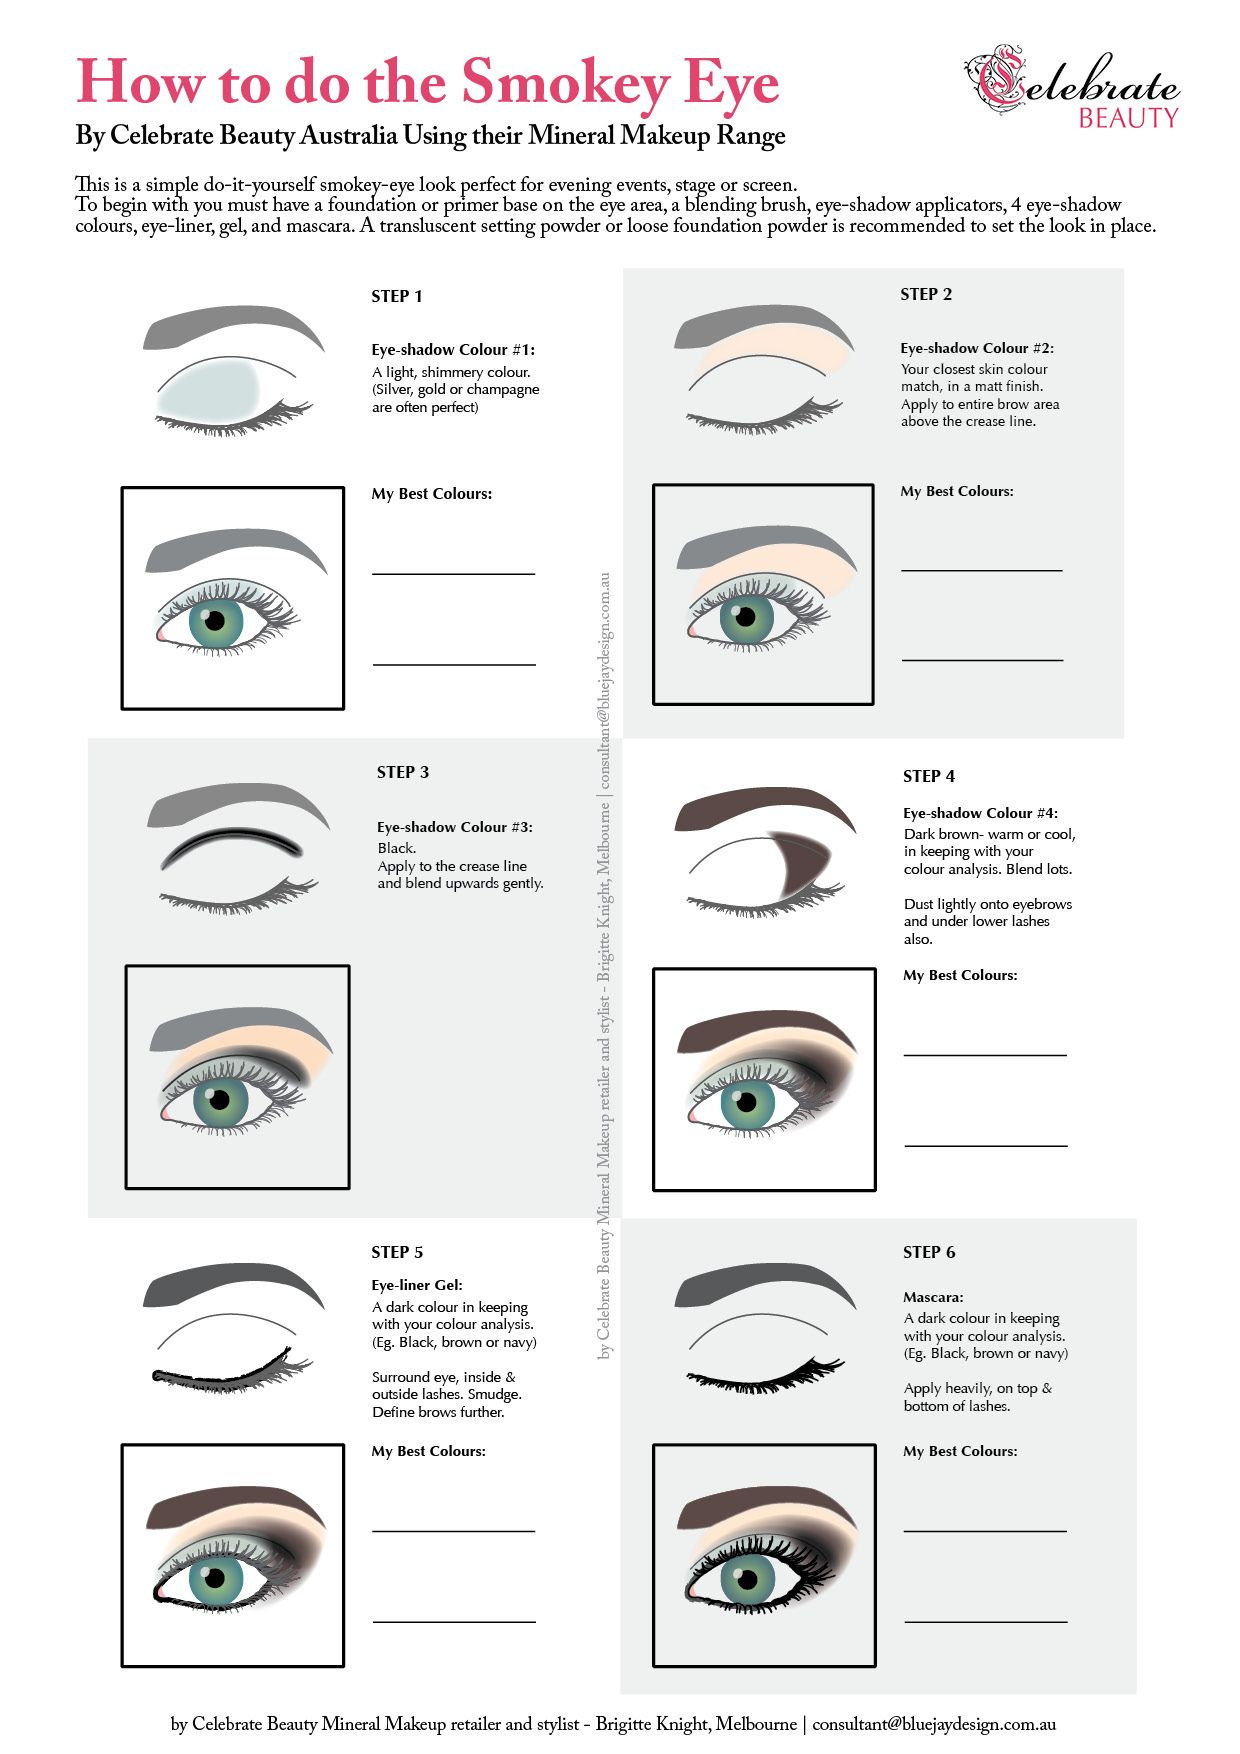 medium resolution of how to do the smokey eye diagram for makeup application visit my board for the upcoming course in melbourne smokeyeye makeuptutorial makeupdemo